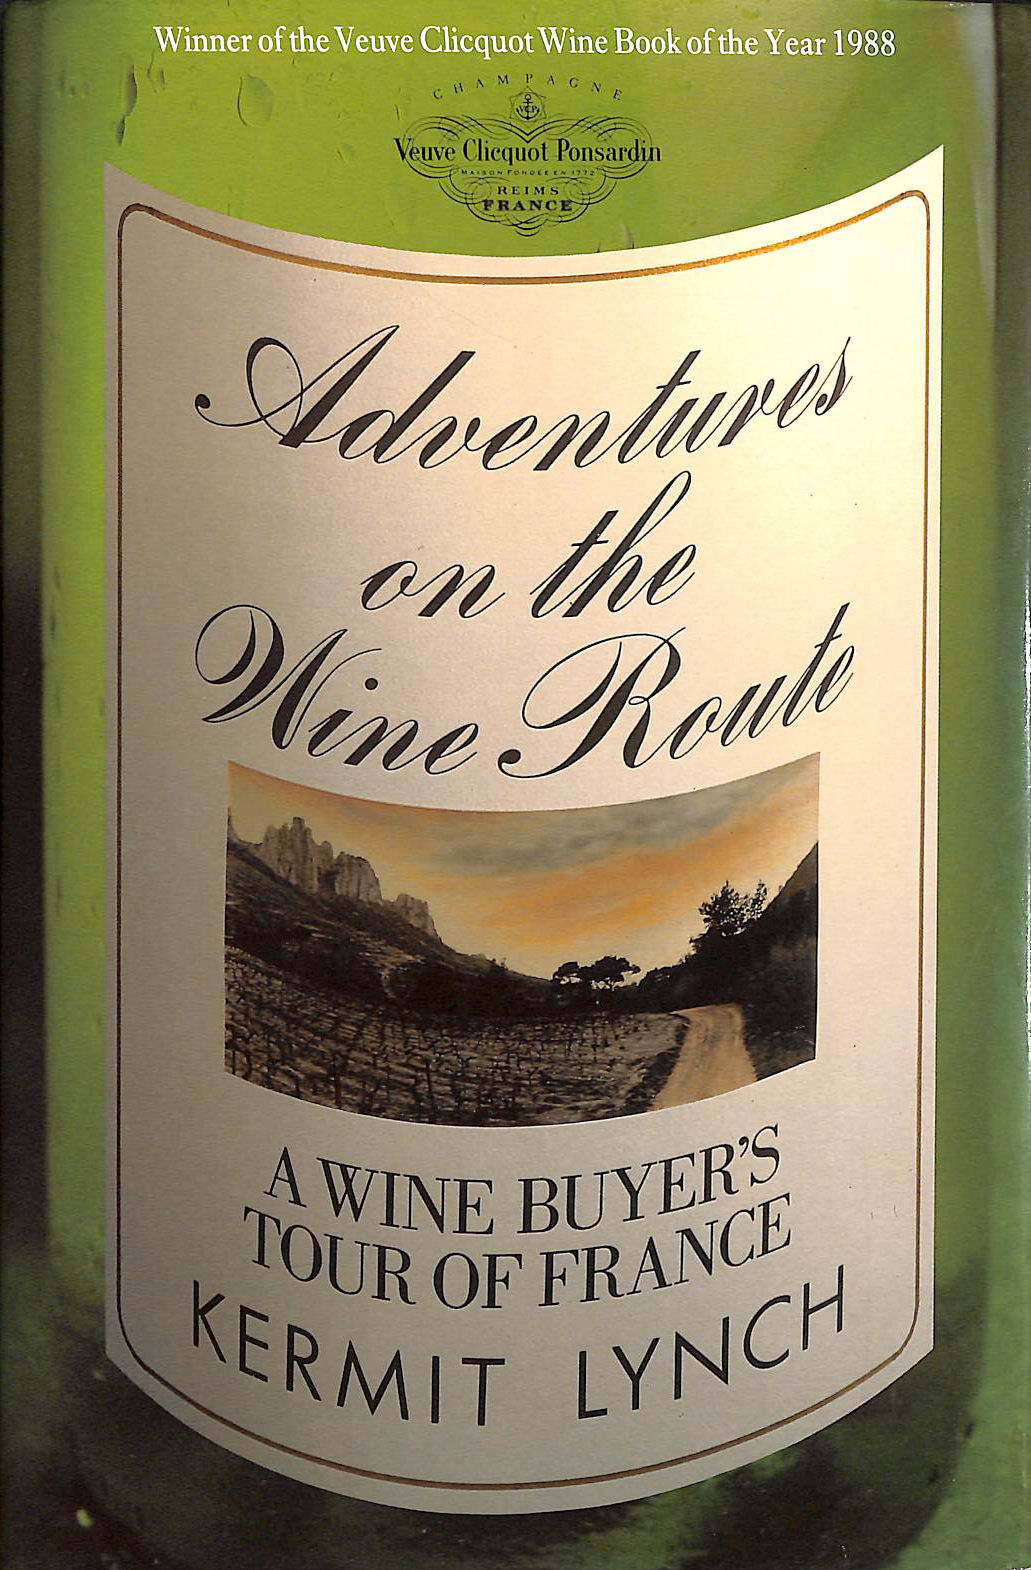 Adventures on the Wine Route: Wine Buyer's Tour of France, Lynch, Kermit